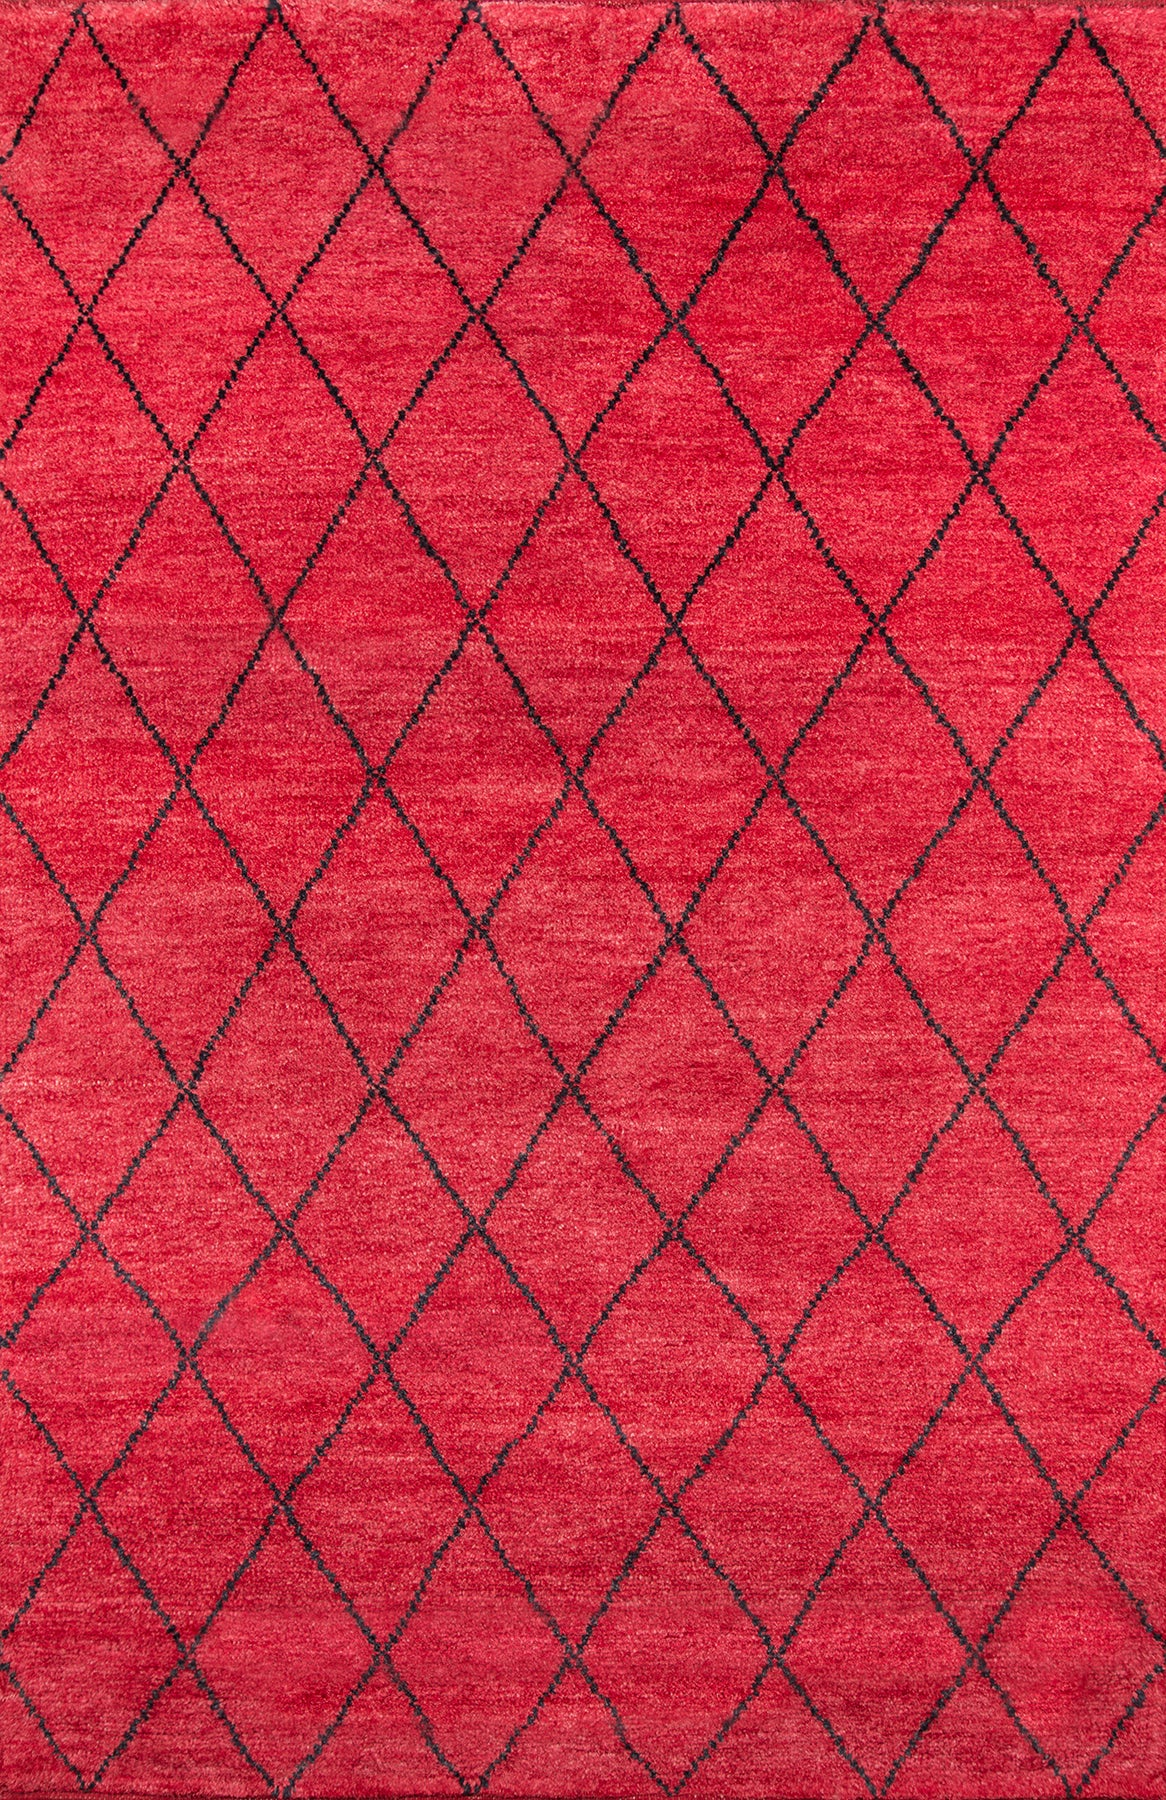 Rectangle 5x8 Red Geometric Hand Knotted Wool Transitional recommended for Kitchen, Bedroom, Bathroom, Dining Room, Office, Hallway, Living Room